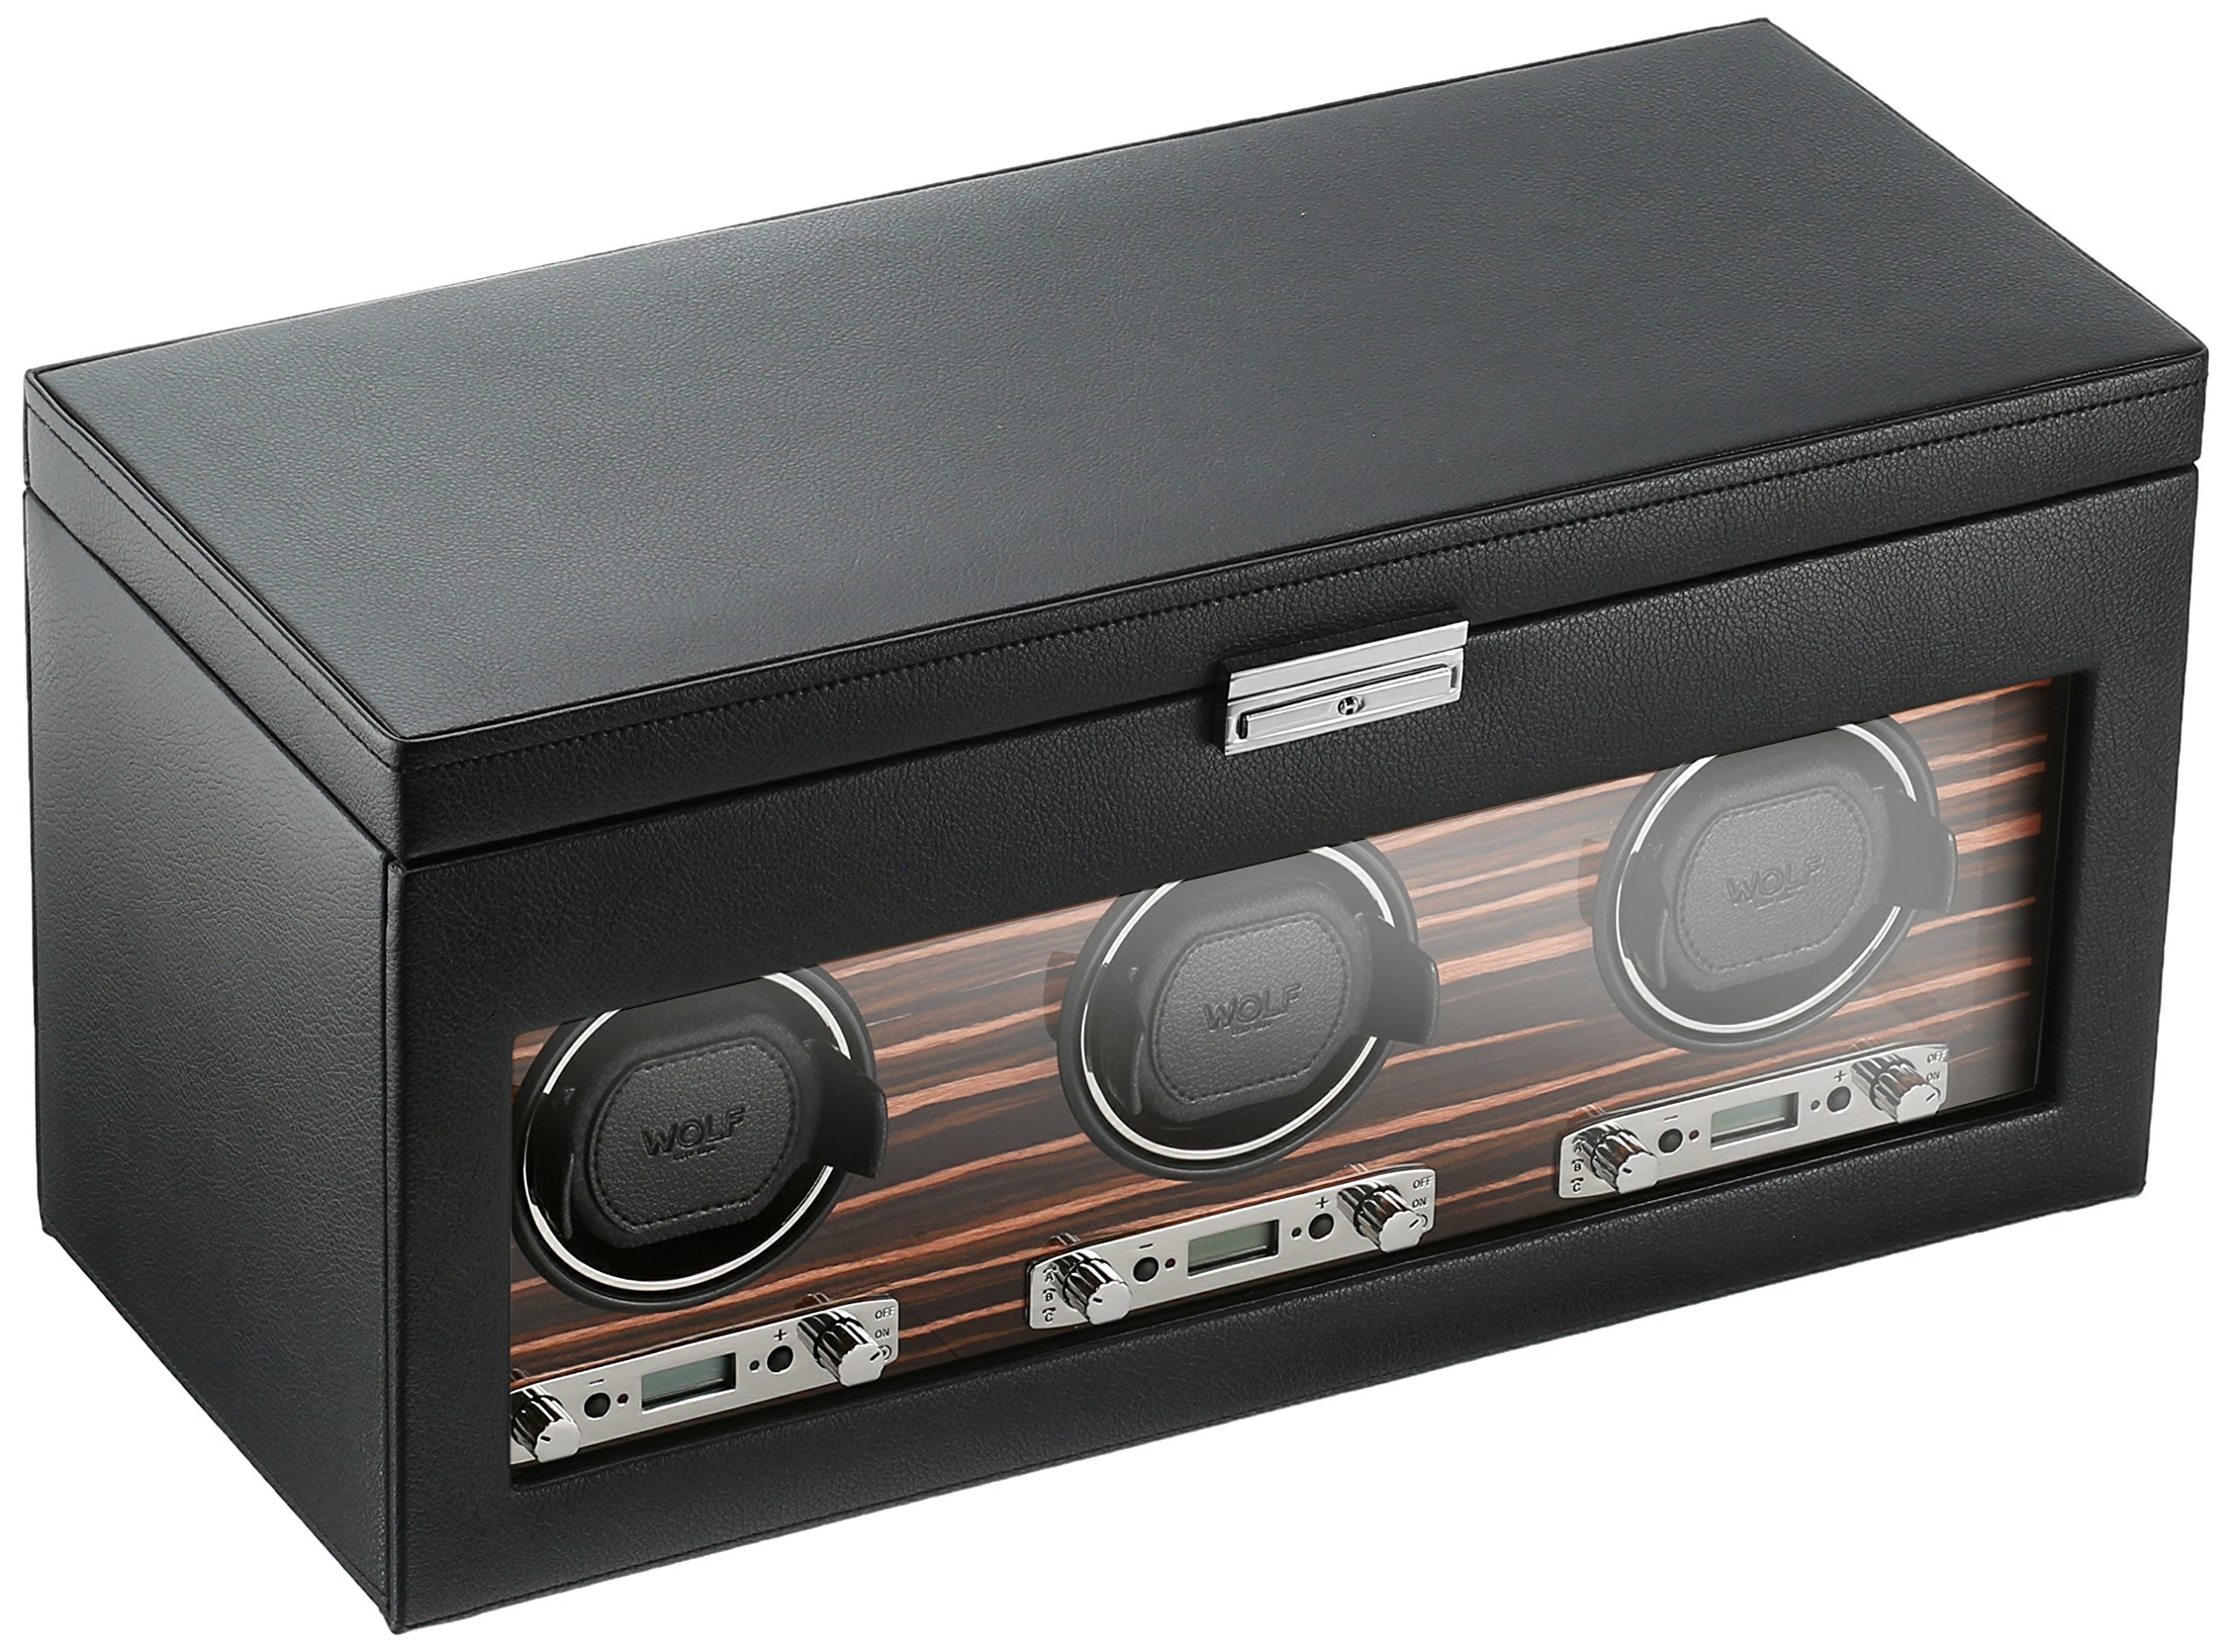 WOLF 457356 Roadster Triple Watch Winder with Cover and Storage, Black by WOLF